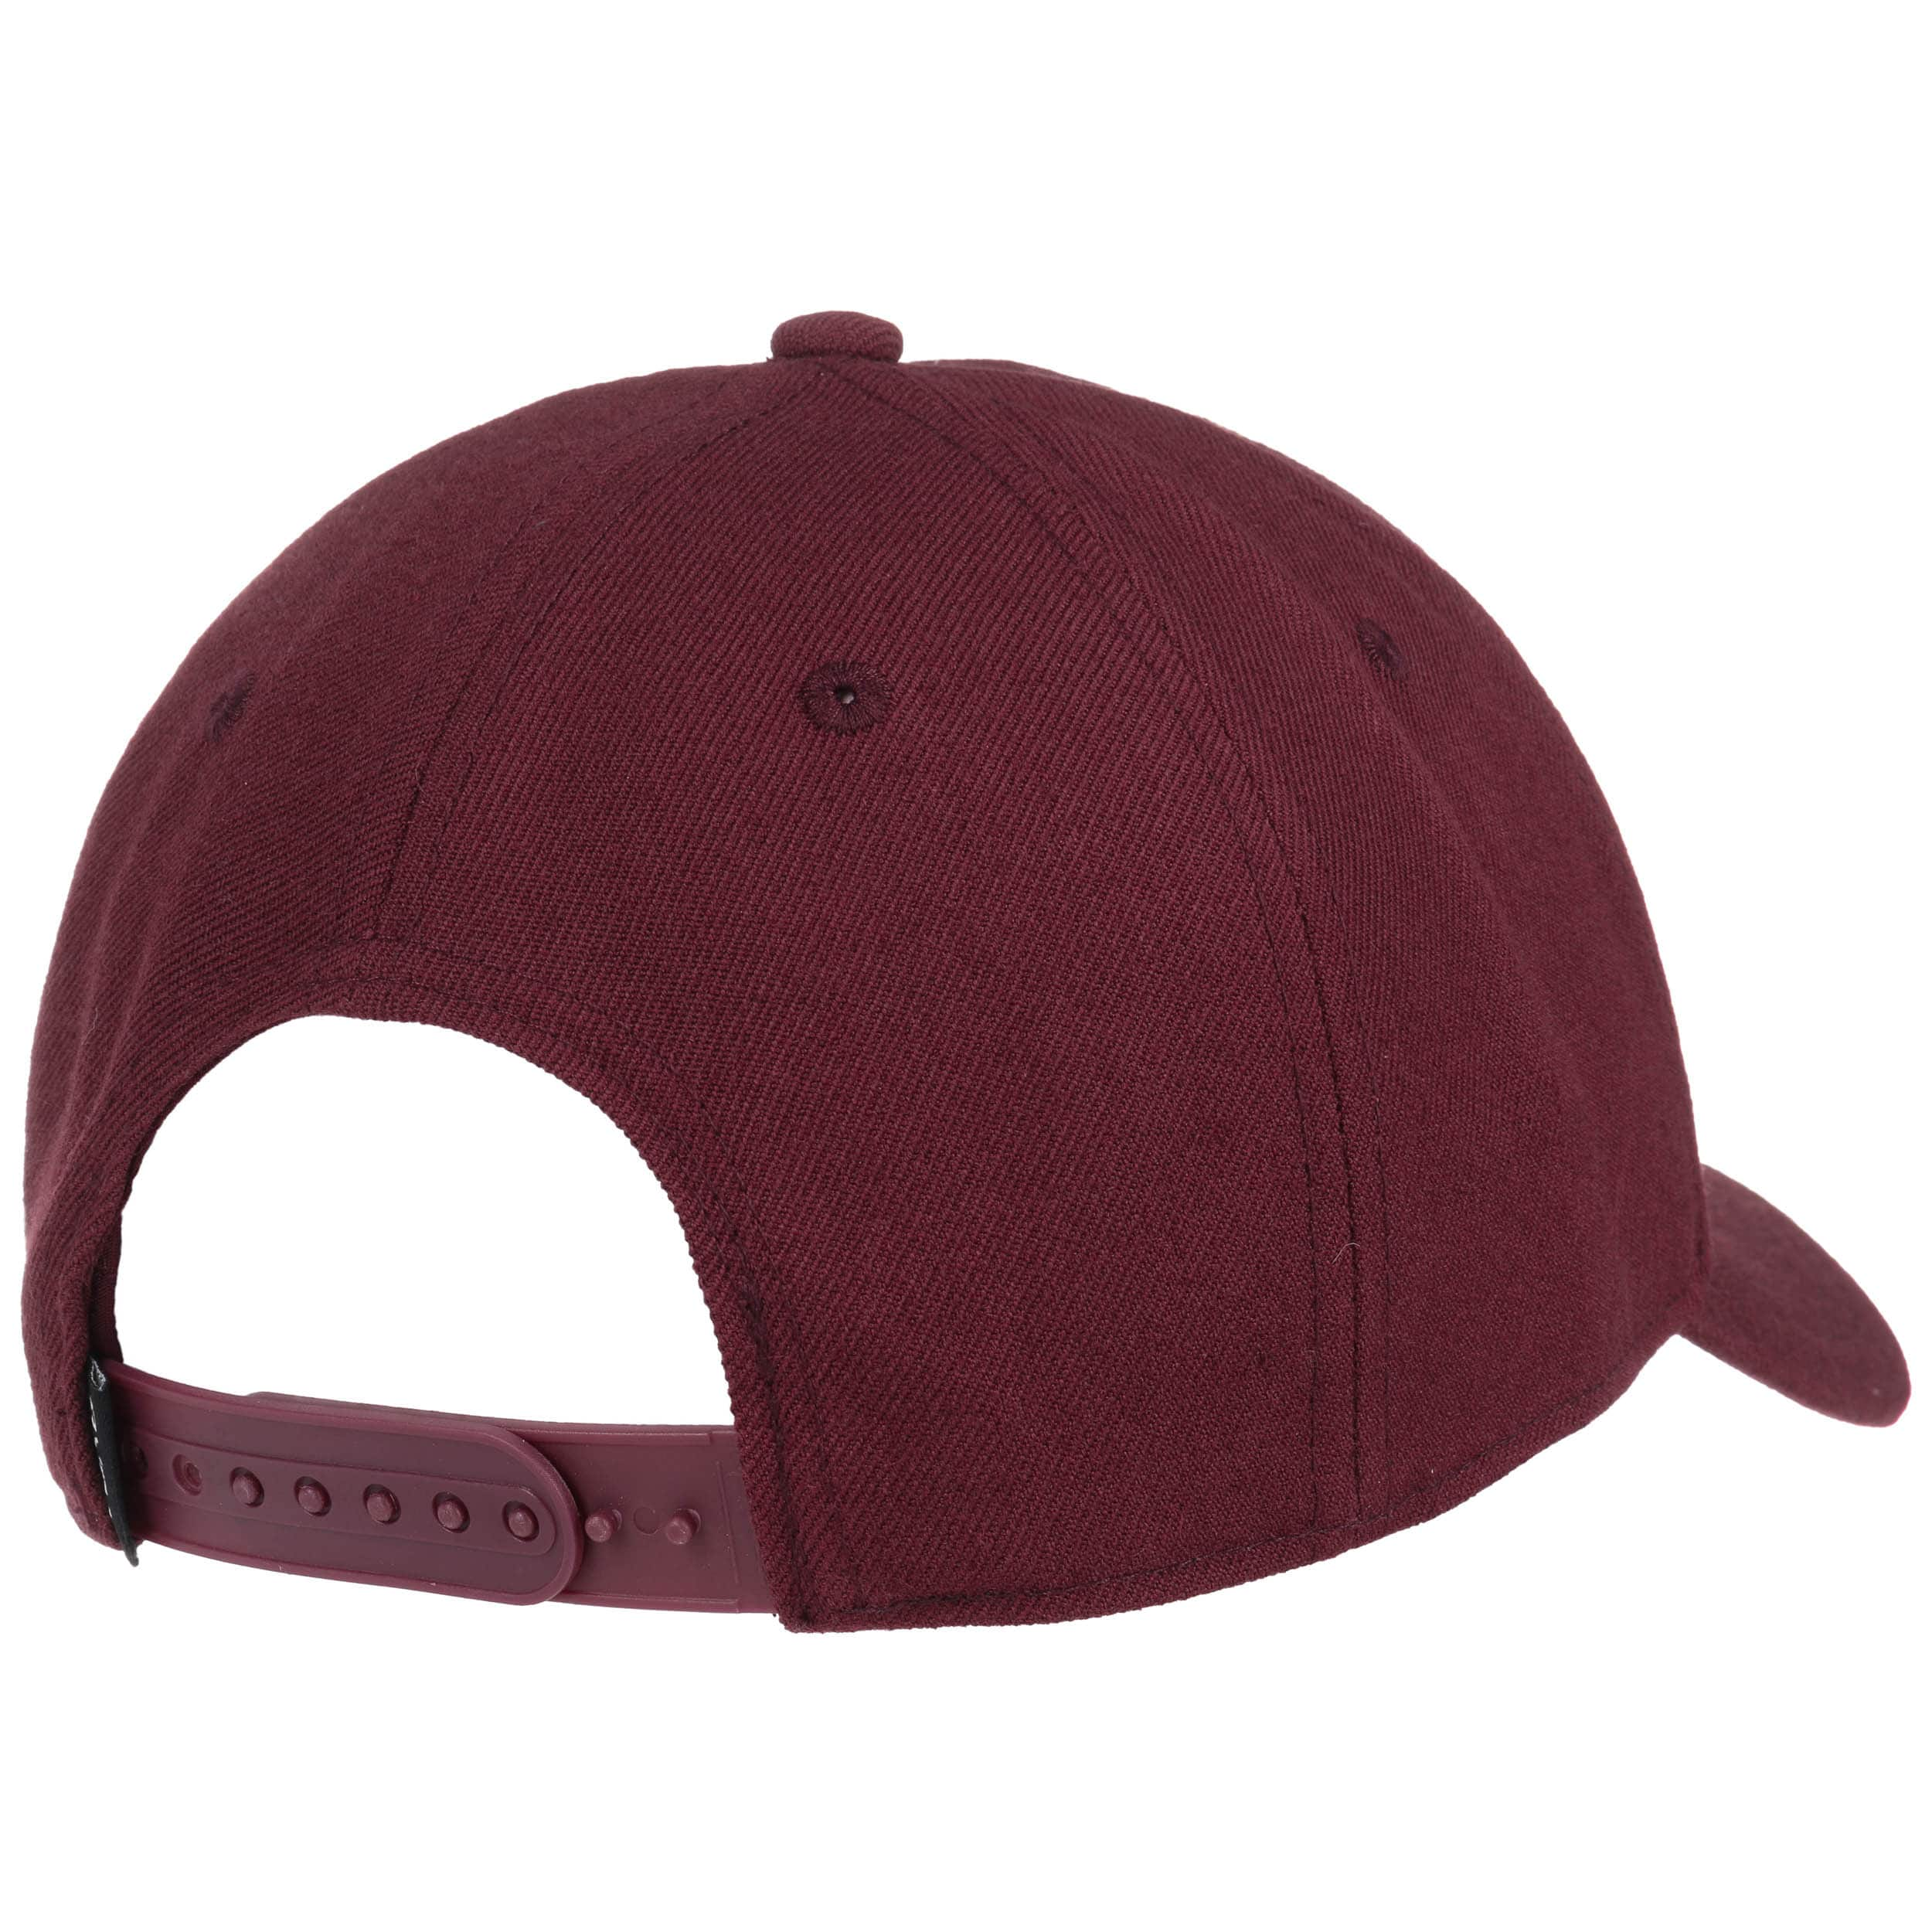 67ed28ff87158 cheap machine snapback cap by rvca bordeaux 3 56701 d1a5c